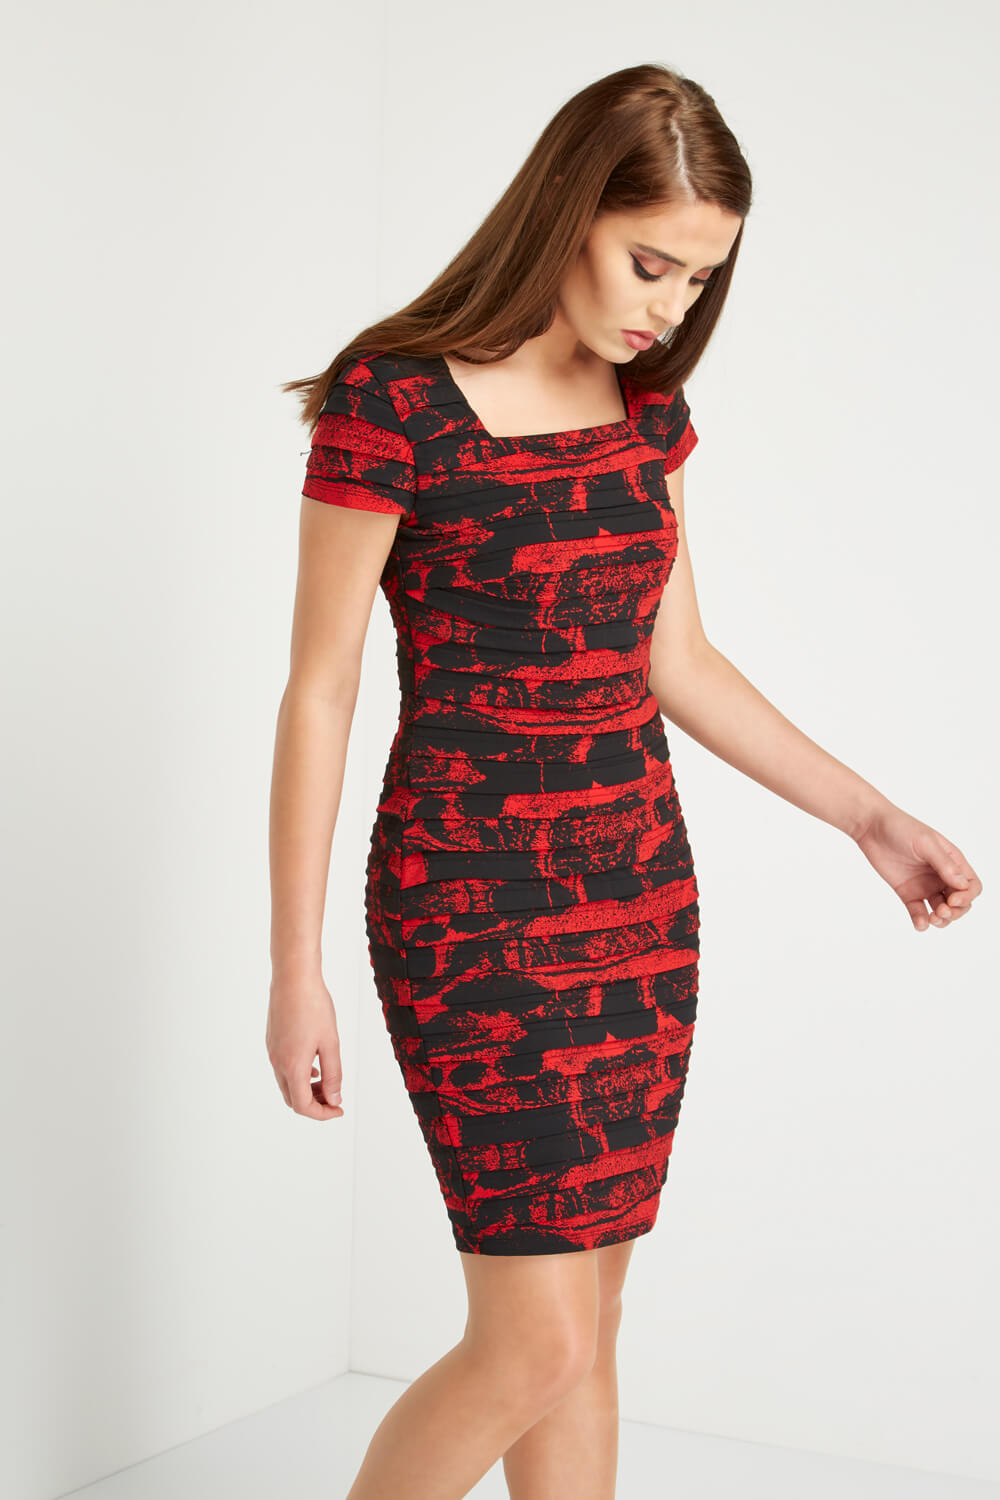 Roman-Originals-Ladies-Floral-Print-Pleated-Dress-Red thumbnail 7